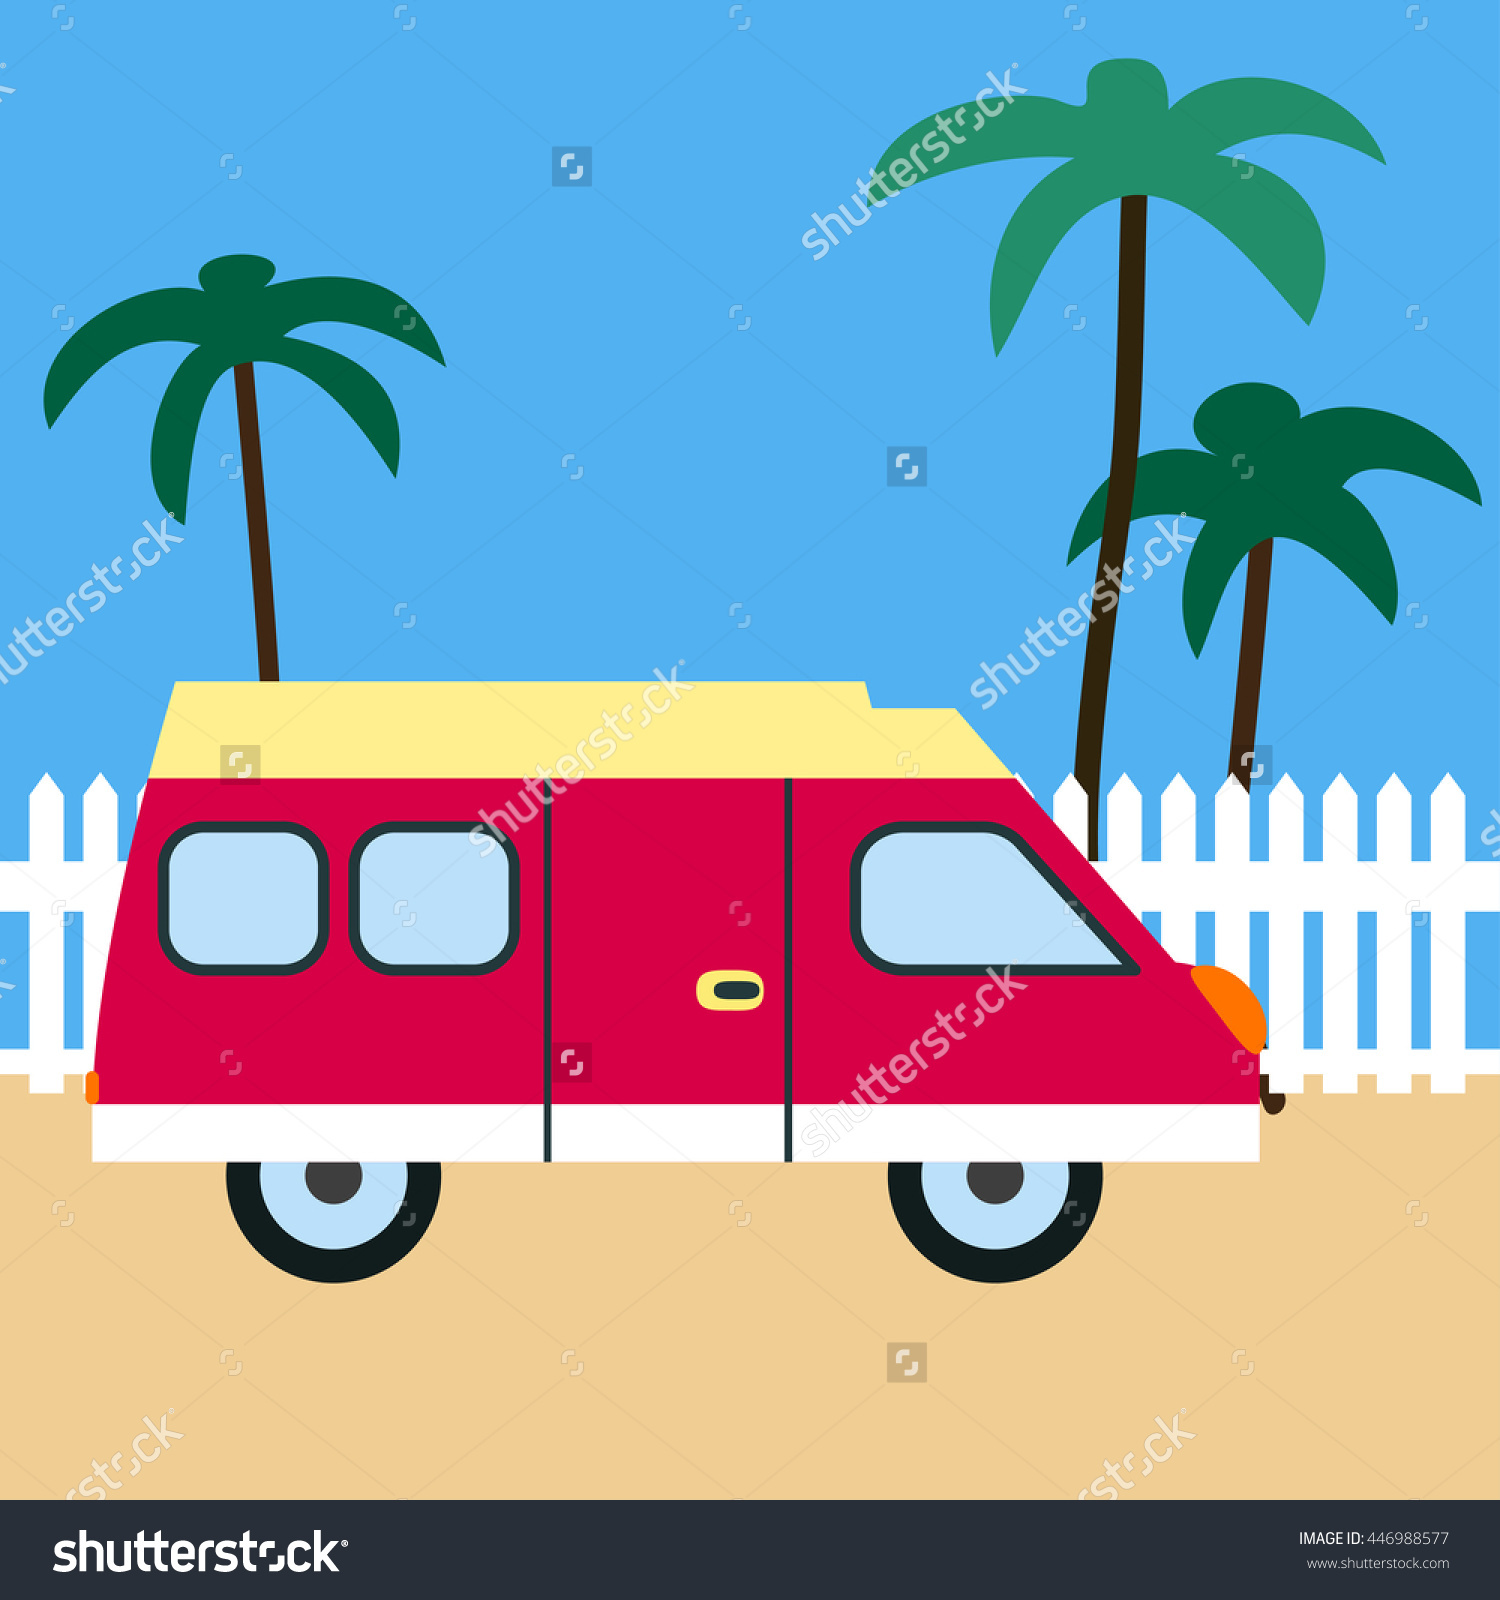 Motor Home On The Beach. Retro Car. Motor Home, Sand, White Fence.